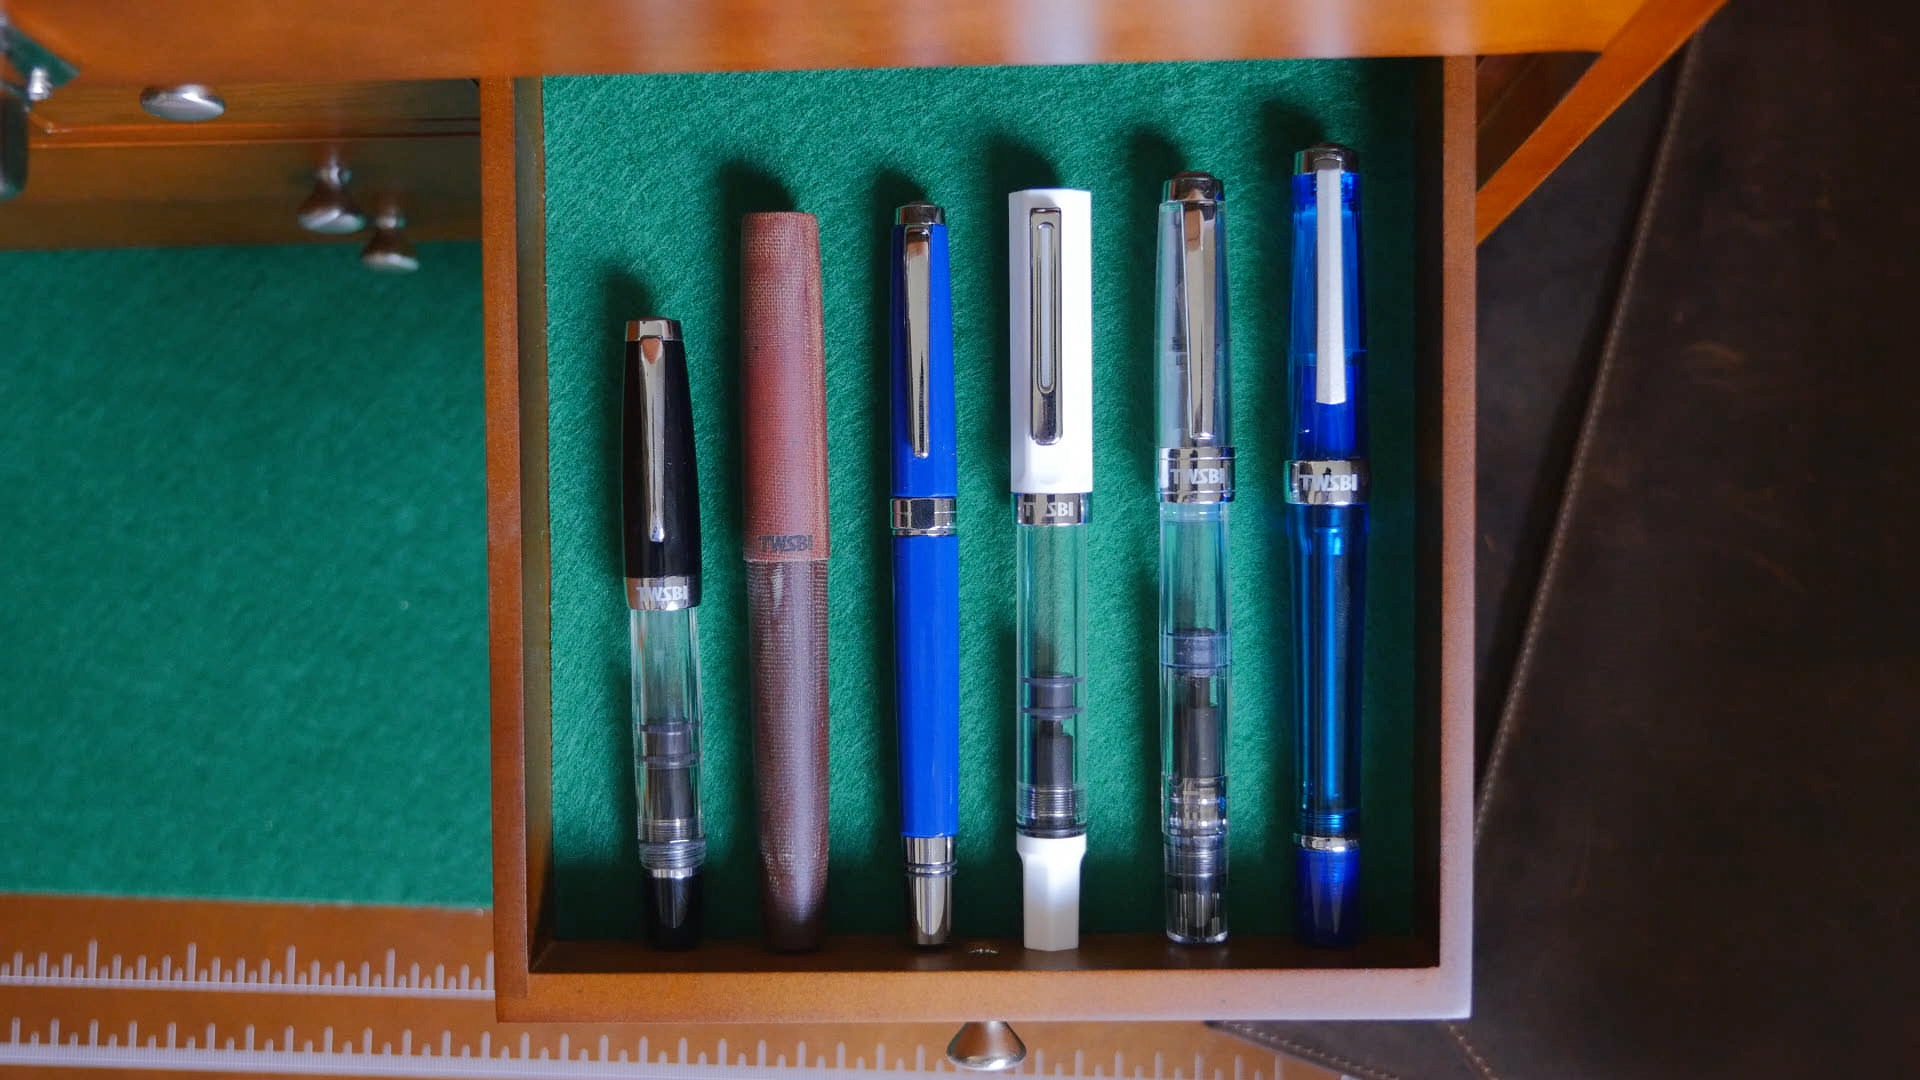 TWSBI Eco review fountain pen comparison